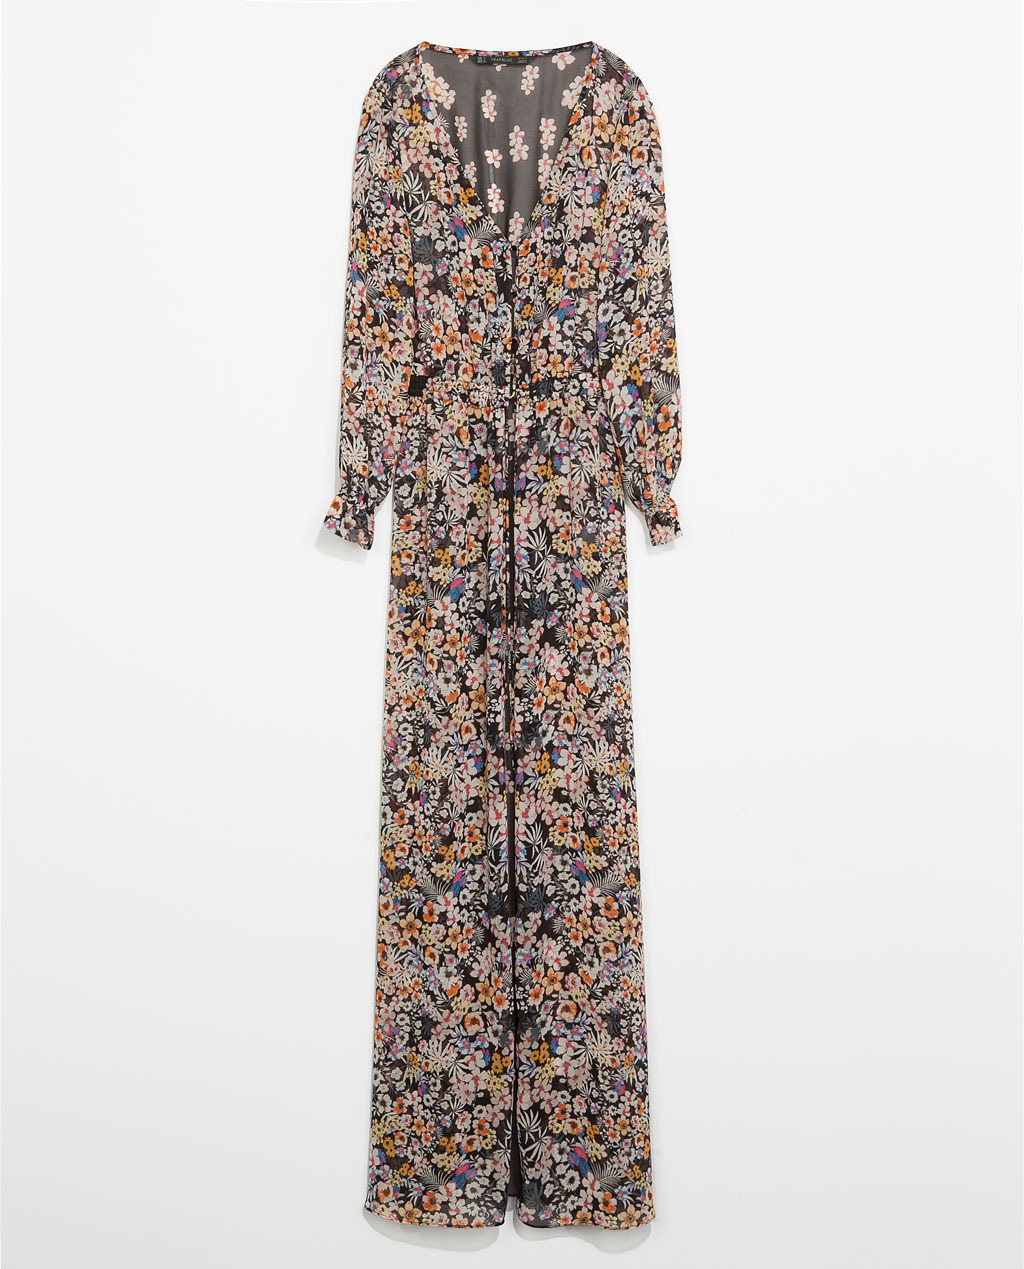 Printed Long Sleeve Maxi Dress - neckline: low v-neck; style: maxi dress; sleeve style: balloon; occasions: casual, evening, holiday; length: floor length; fit: body skimming; fibres: polyester/polyamide - 100%; predominant colour: multicoloured; sleeve length: long sleeve; texture group: sheer fabrics/chiffon/organza etc.; pattern size: big & busy; pattern: florals; season: s/s 2014; multicoloured: multicoloured